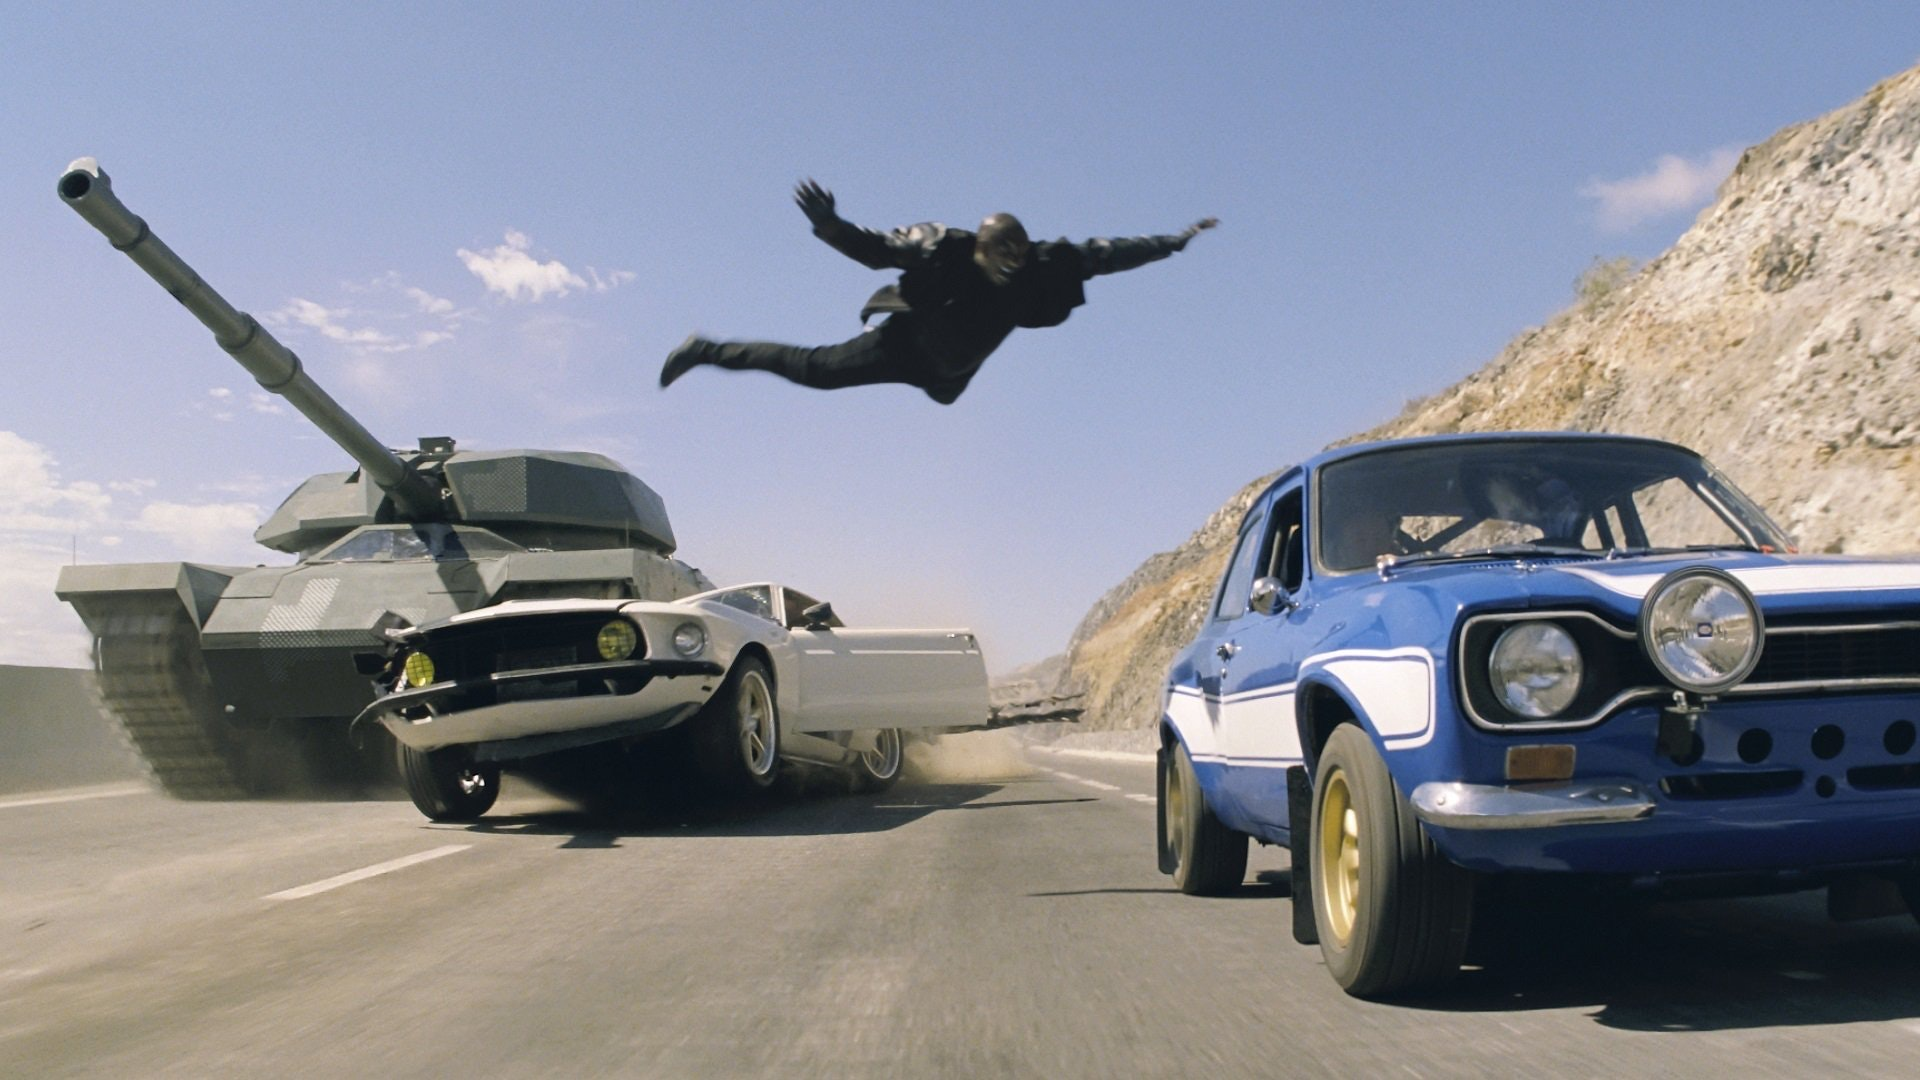 Download photos about life mp3 song fast and furious 6